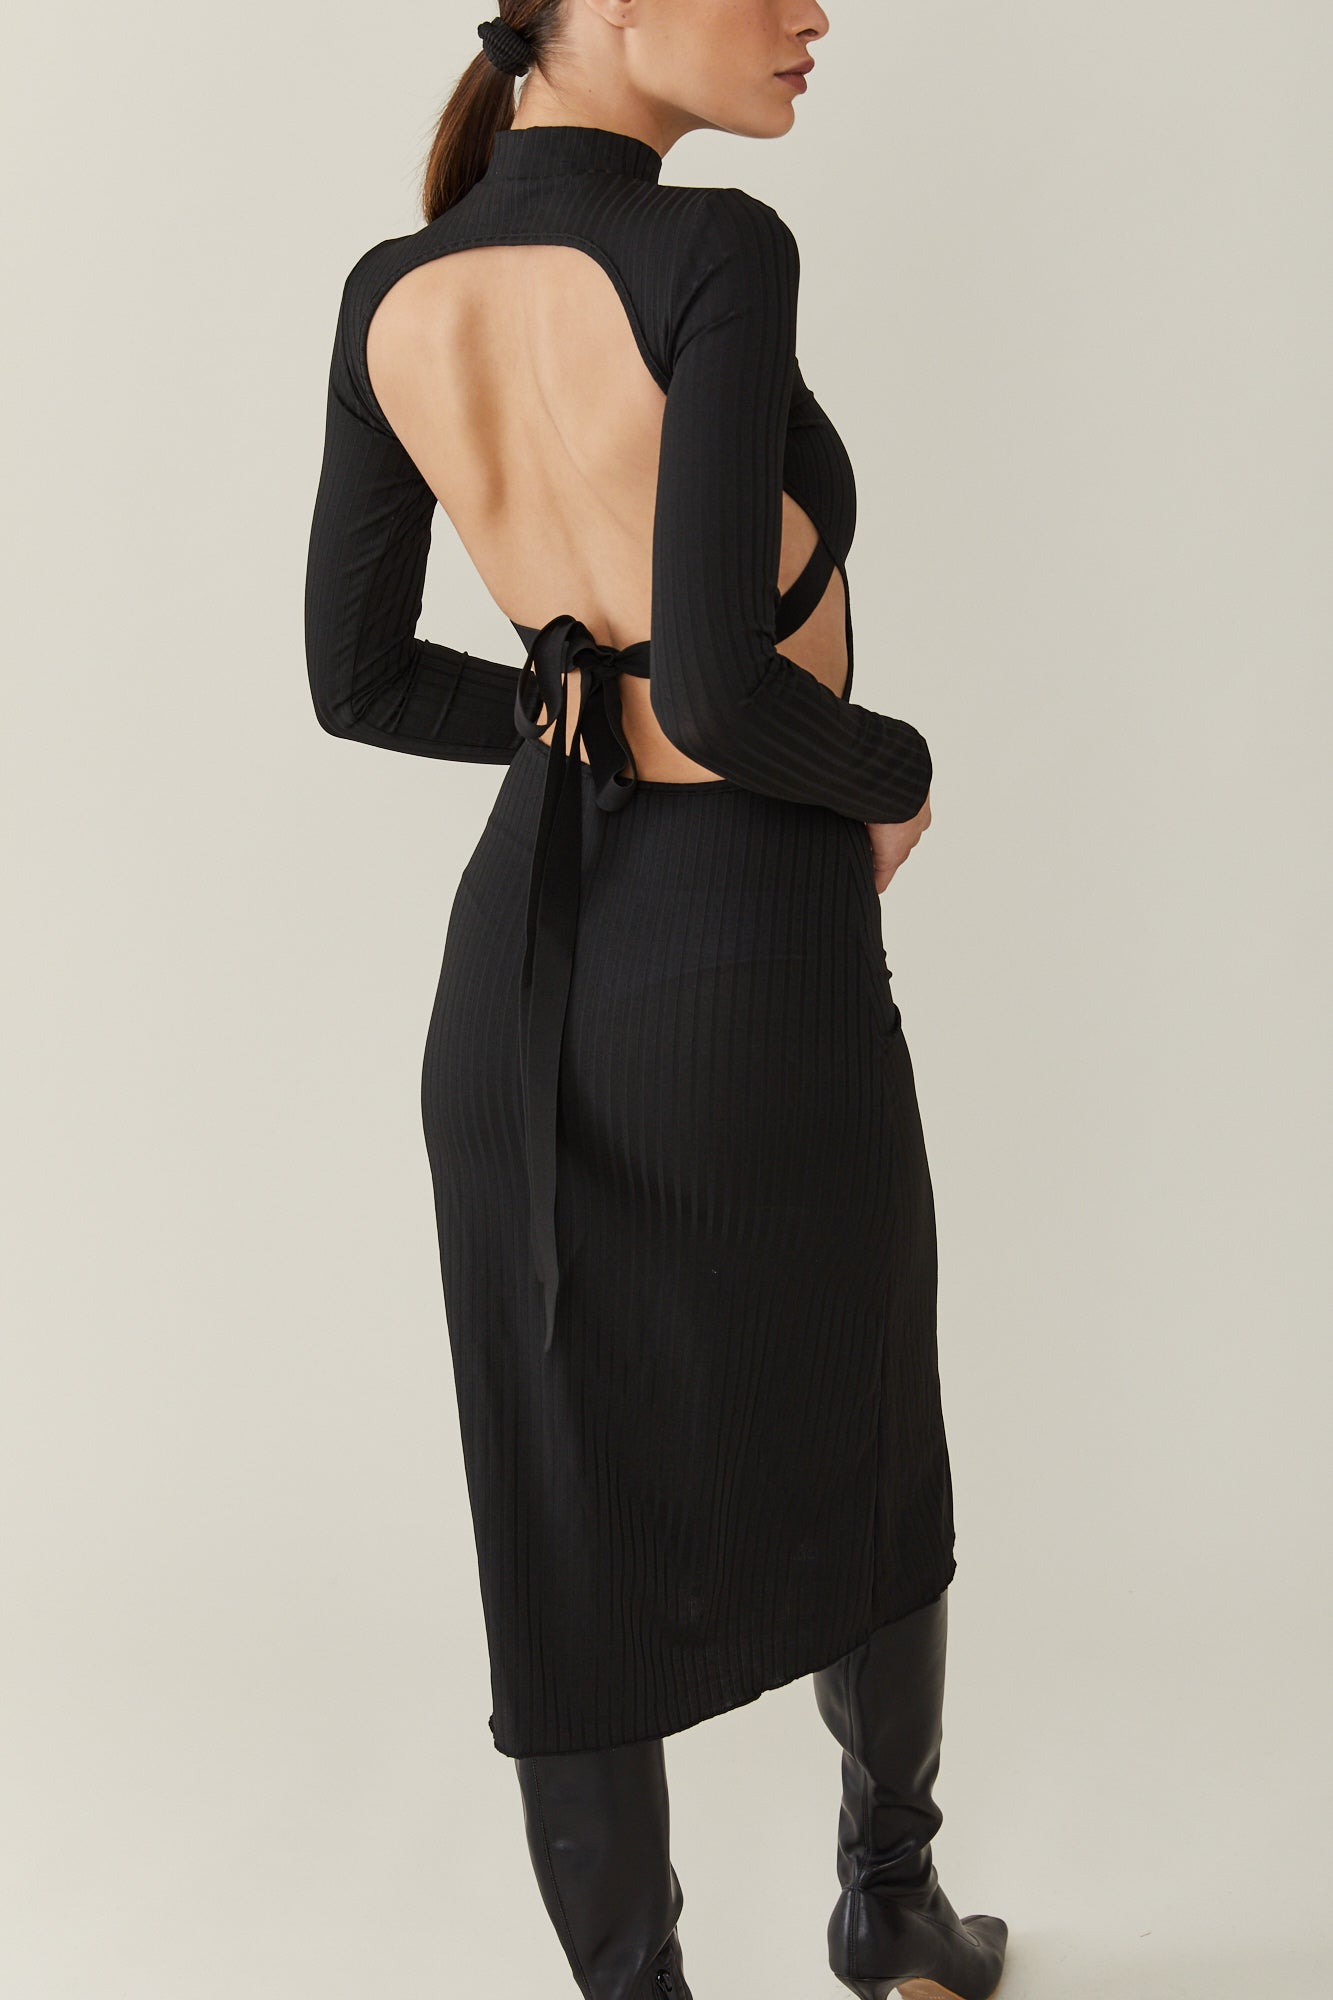 Neomi Backless dress